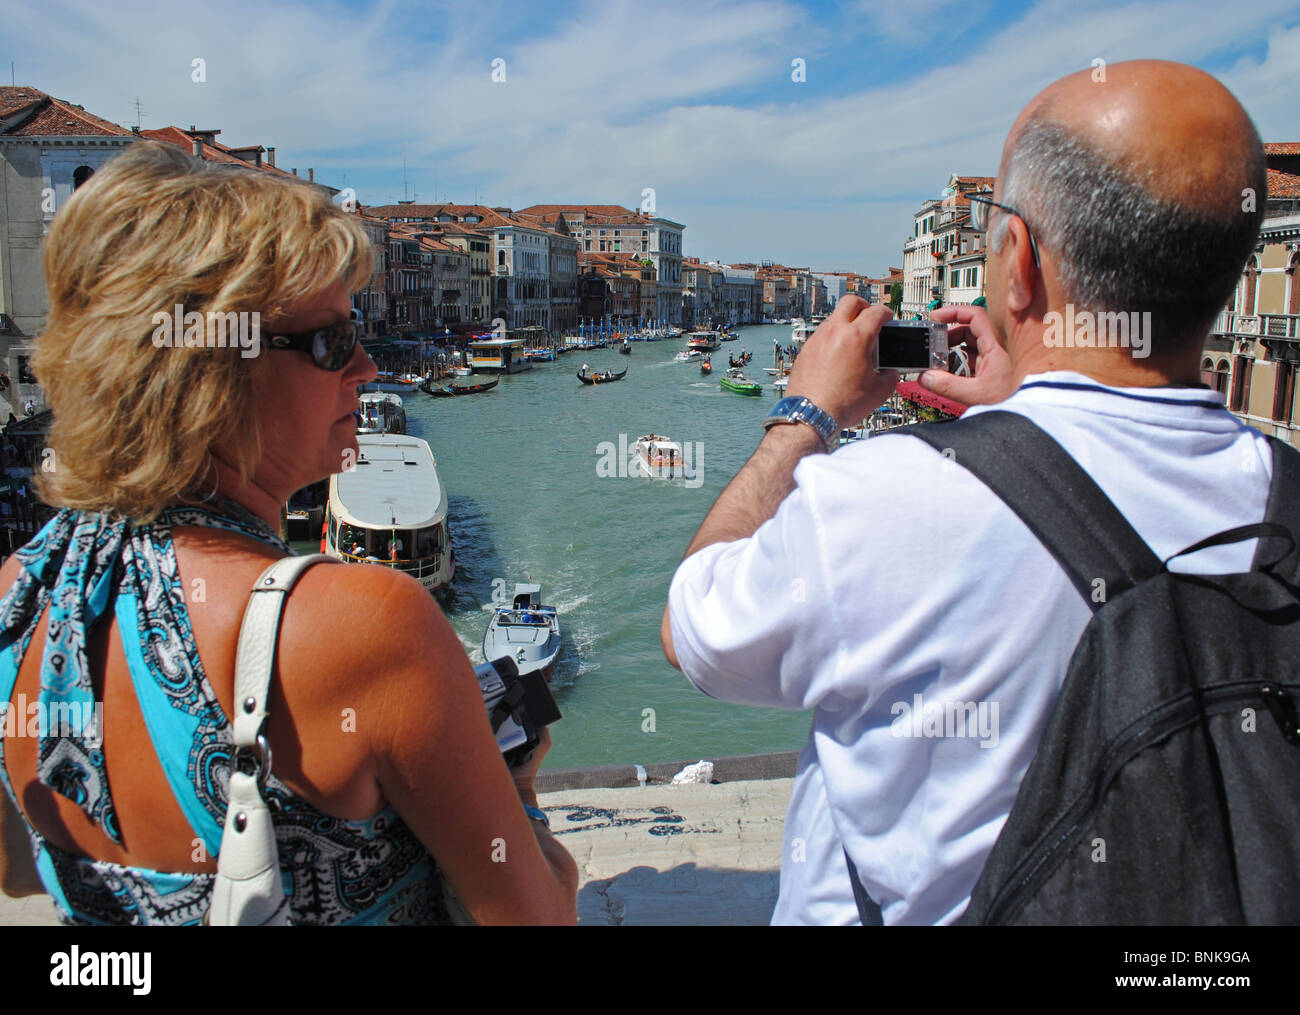 Tourists taking photos of the Grand Canal from the Rialto Bridge, Venice, Italy - Stock Image